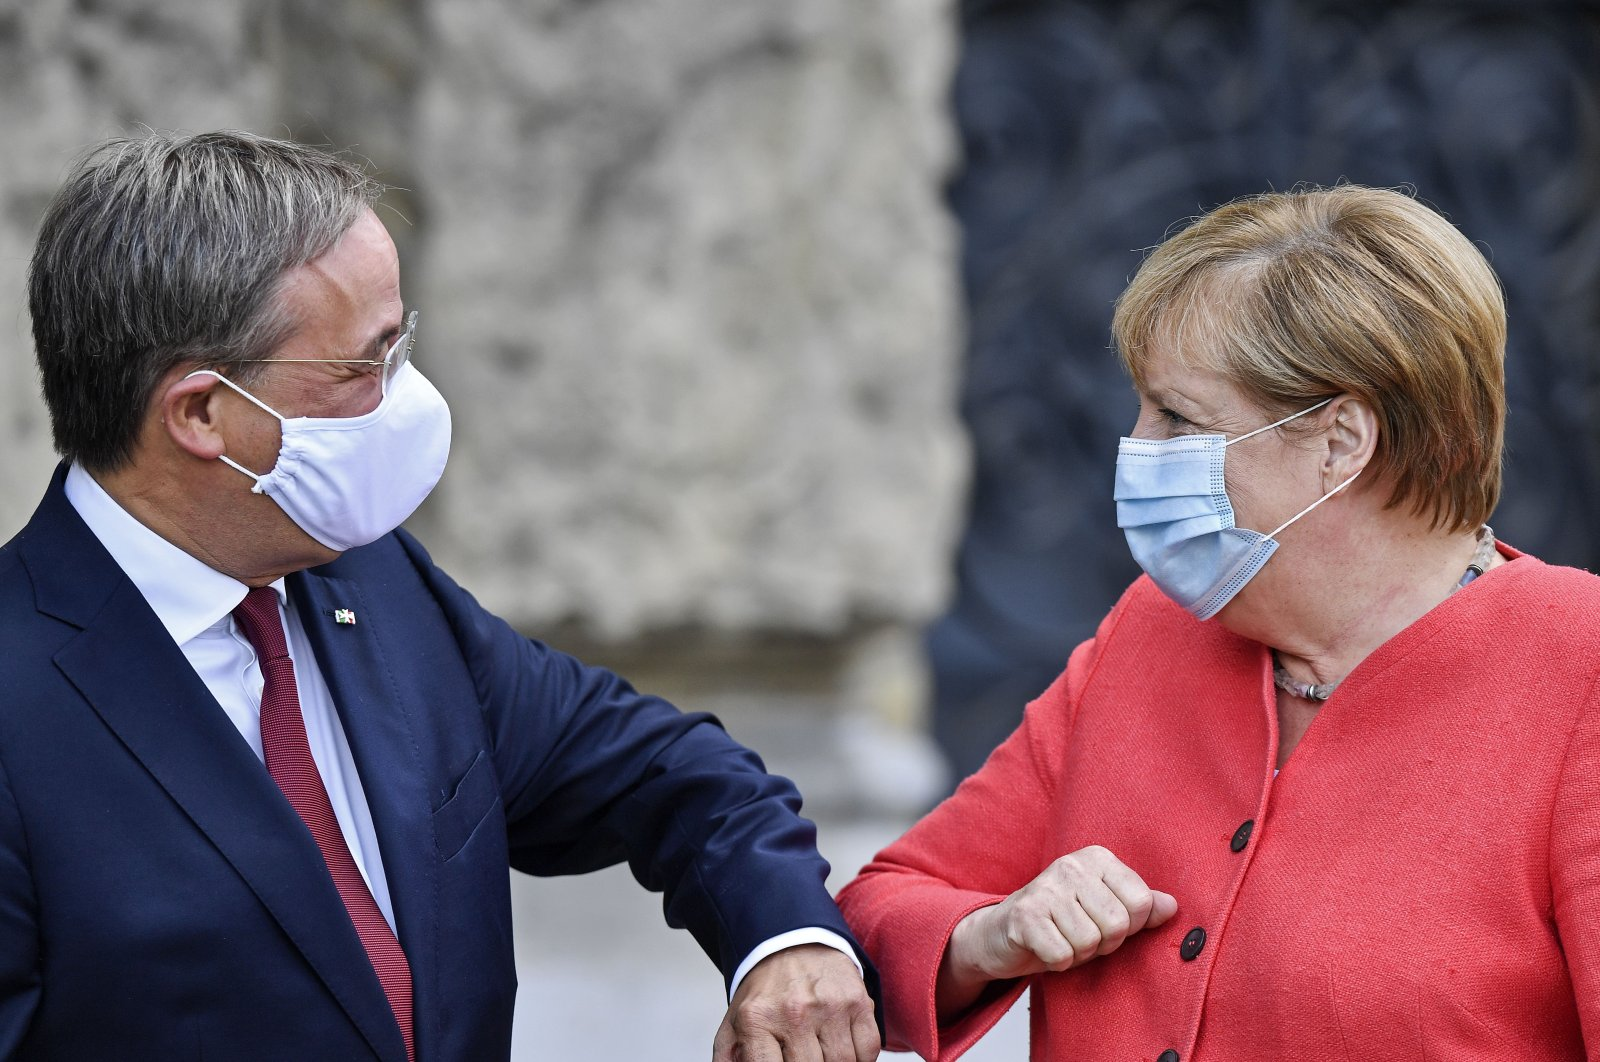 In this Tuesday, Aug. 18, 2020 file photo German Chancellor Angela Merkel, left, and her successor as chairman of the German Christian Democratic Union, CDU, Armin Laschet, right, greet each other during a meeting in Duesseldorf, Germany. (AP File Photo)